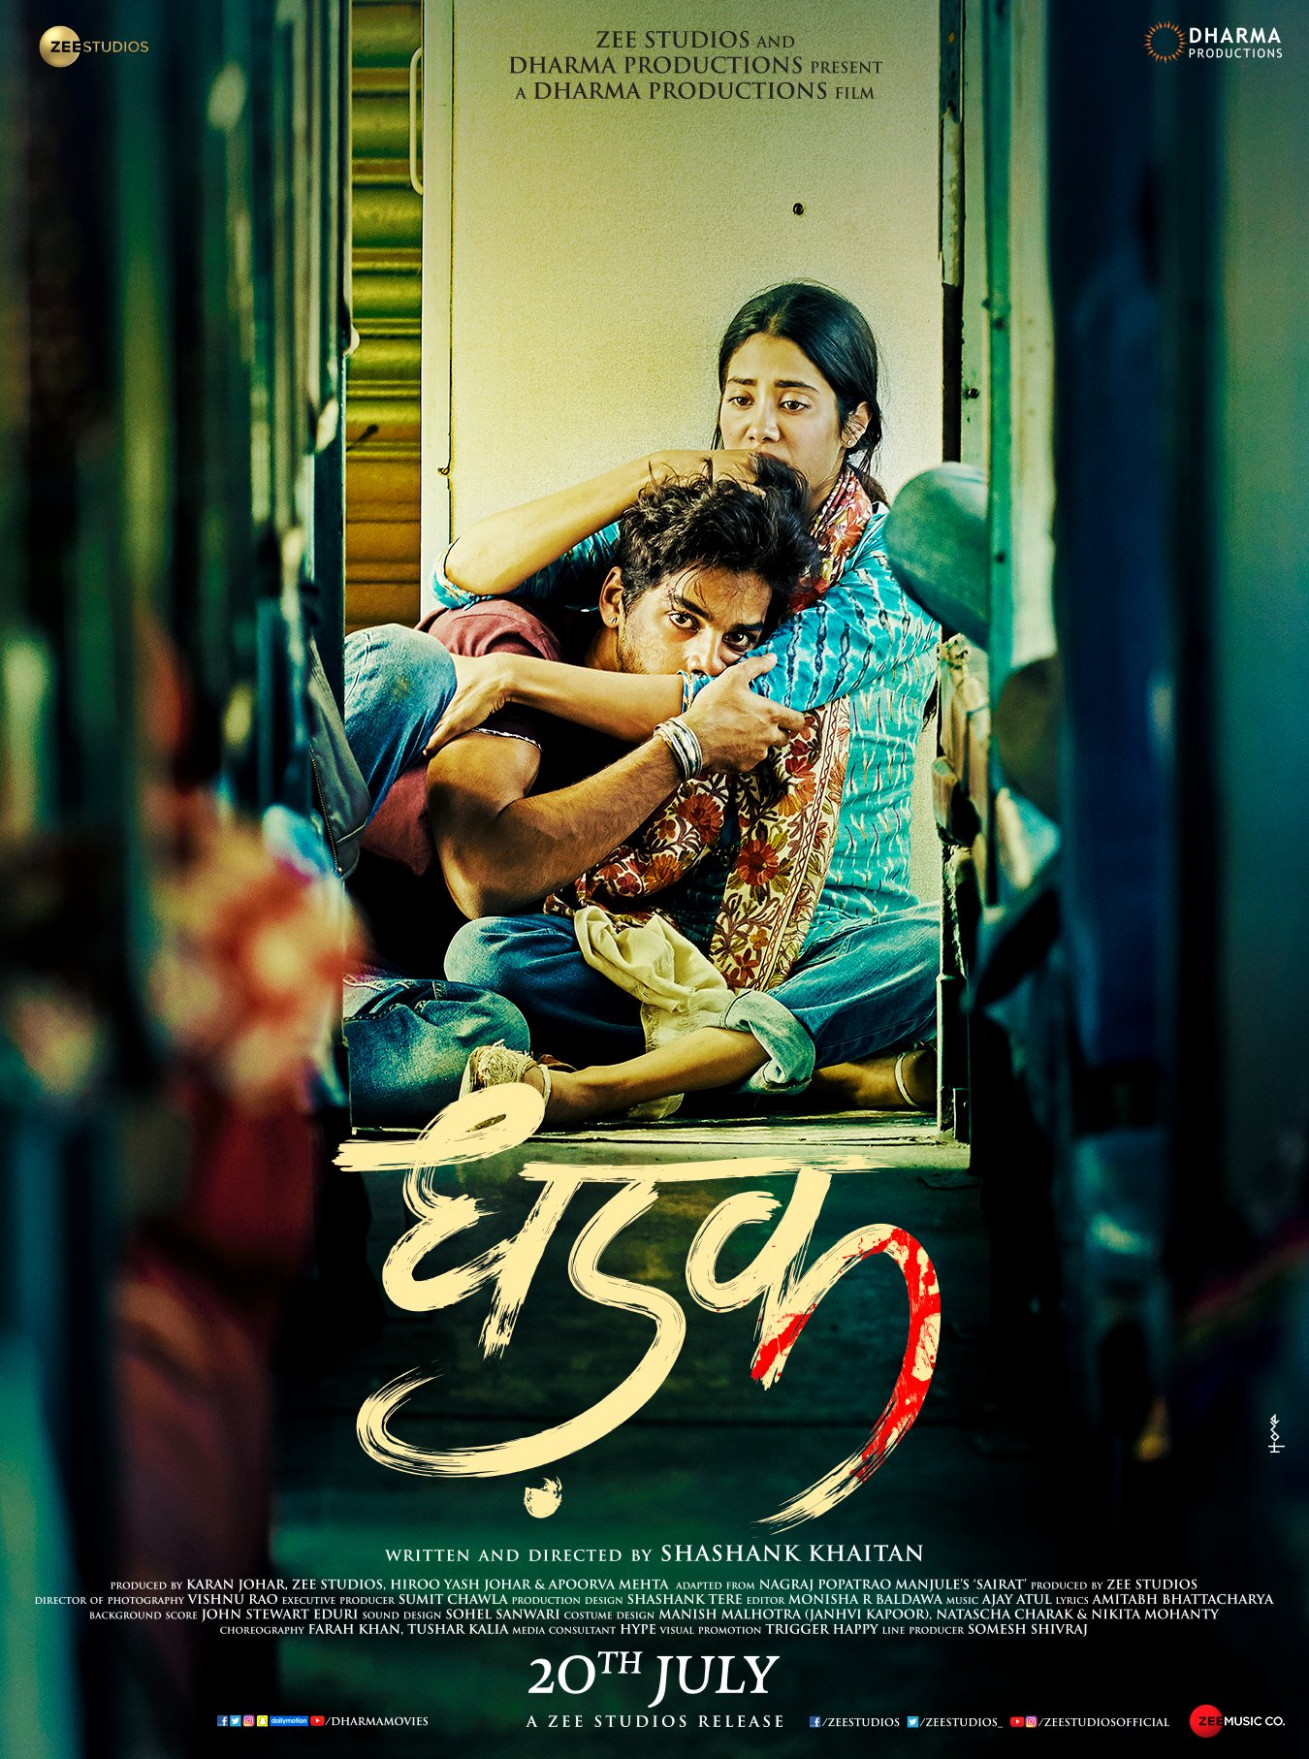 Download Dhadak (2018) Movie HD Official Poster 13 ...